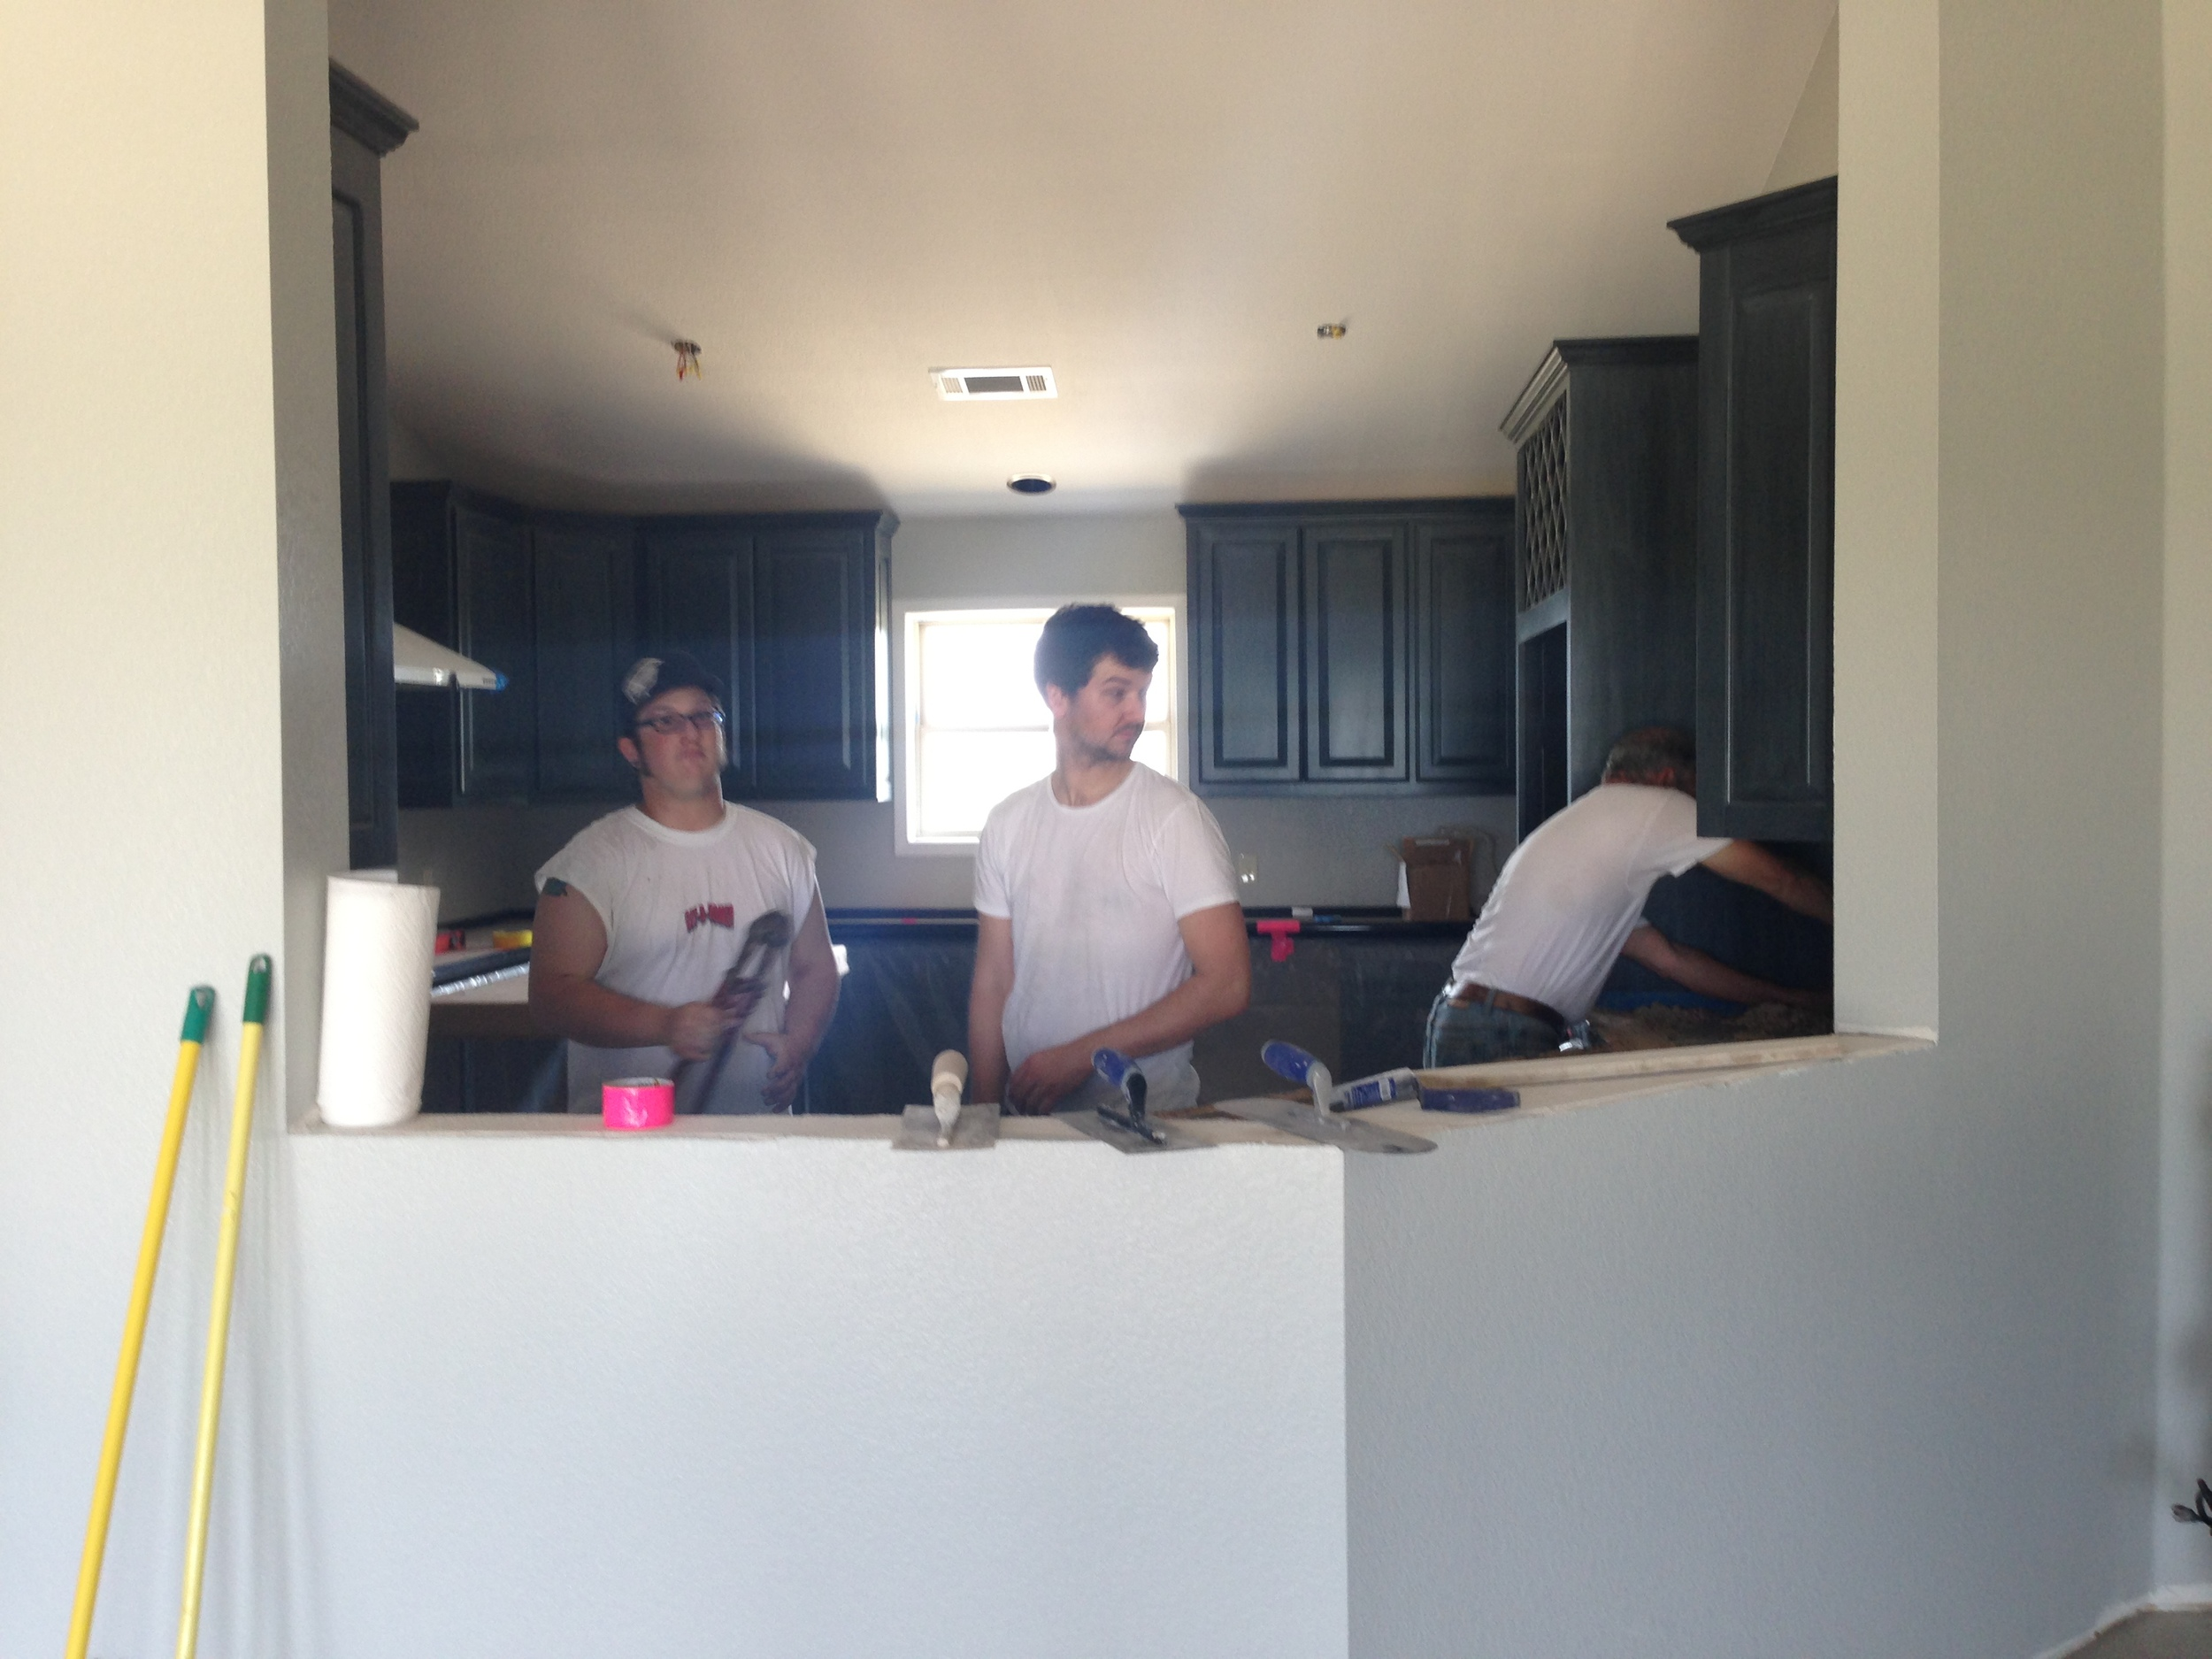 With much needed assistance from Cobbler we got the entire kitchen poured in one weekend.